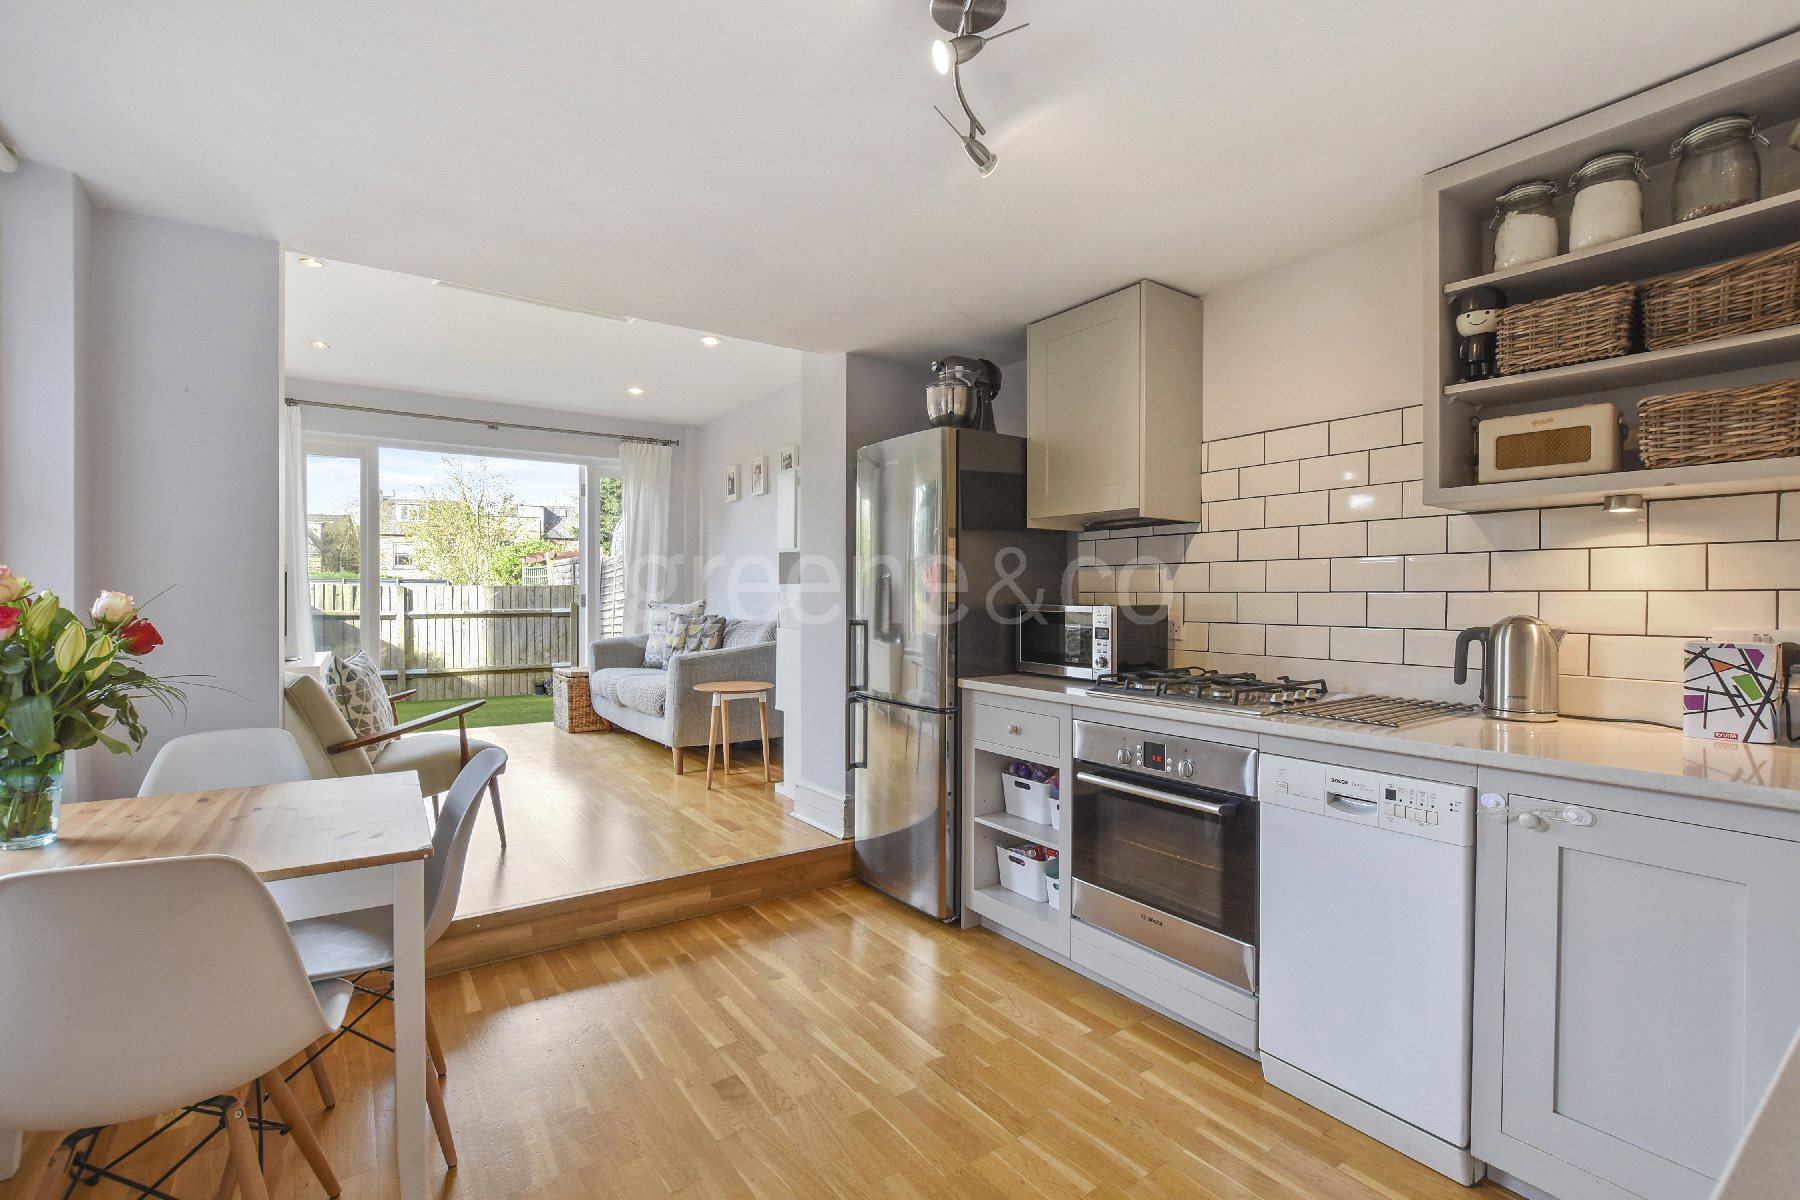 2 Bedrooms Flat for sale in Albany Road, Stroud Green, London, N4